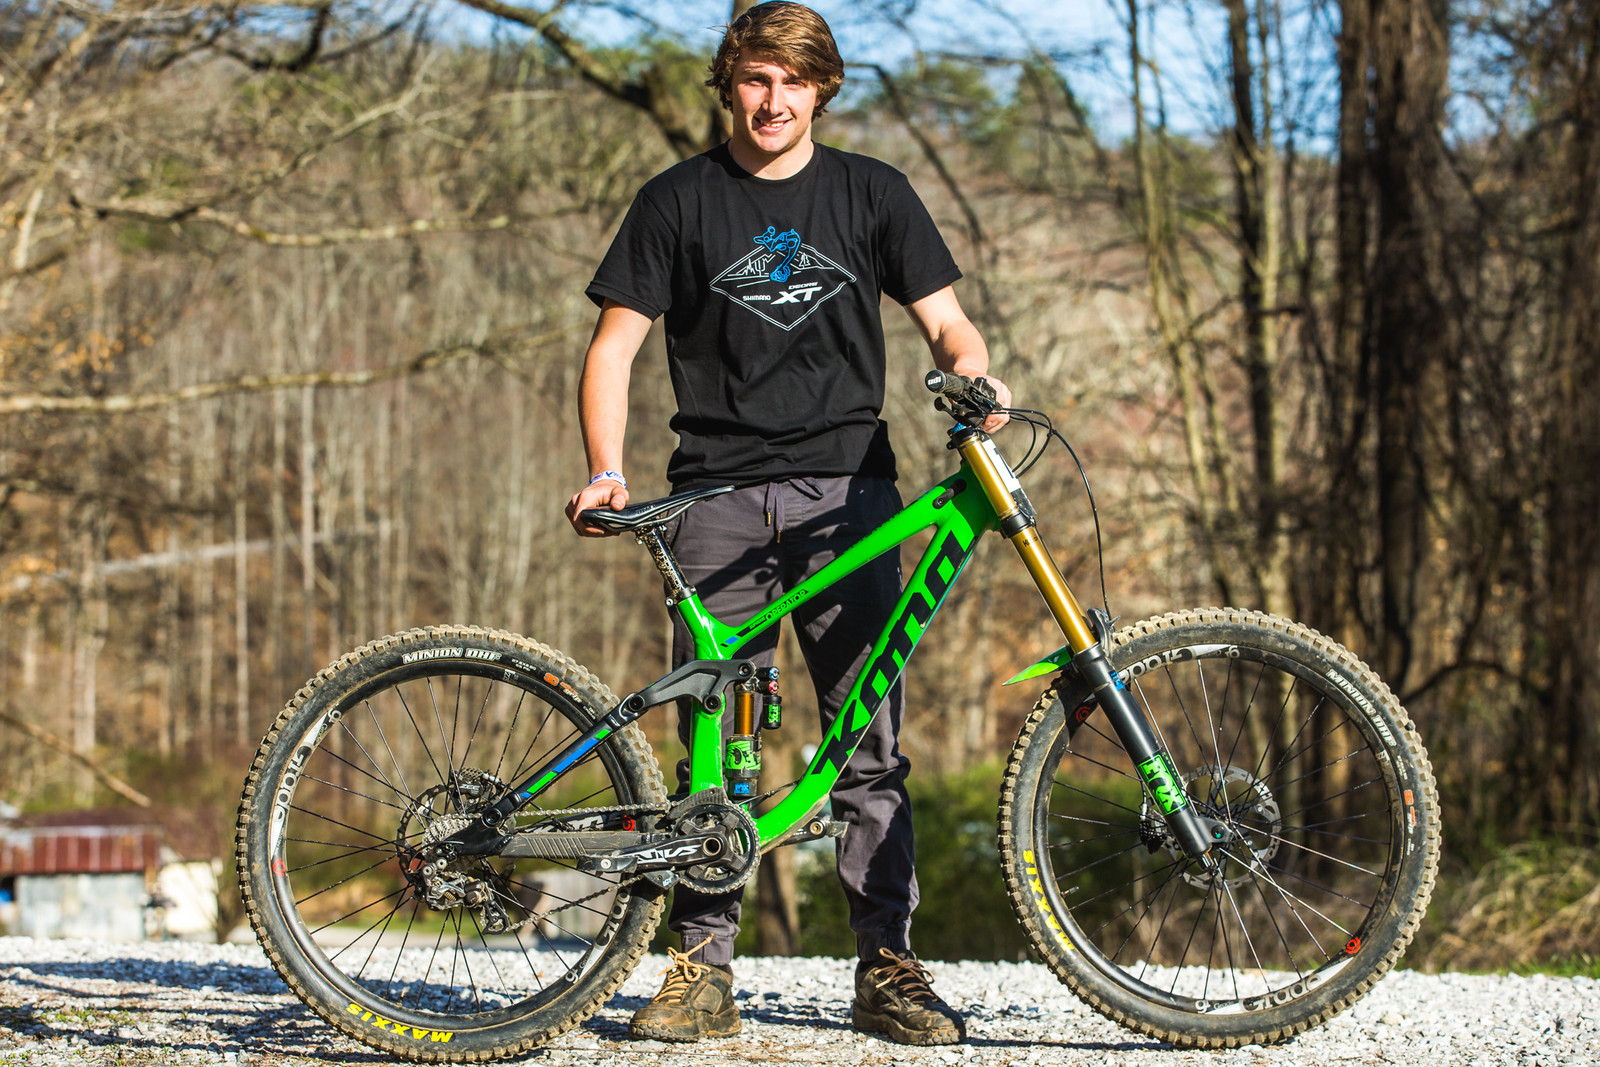 Pro GRT Pro Bike - Nate St. Claire's Kona Supreme Operator - Pro Bikes from Windrock Pro GRT - Mountain Biking Pictures - Vital MTB